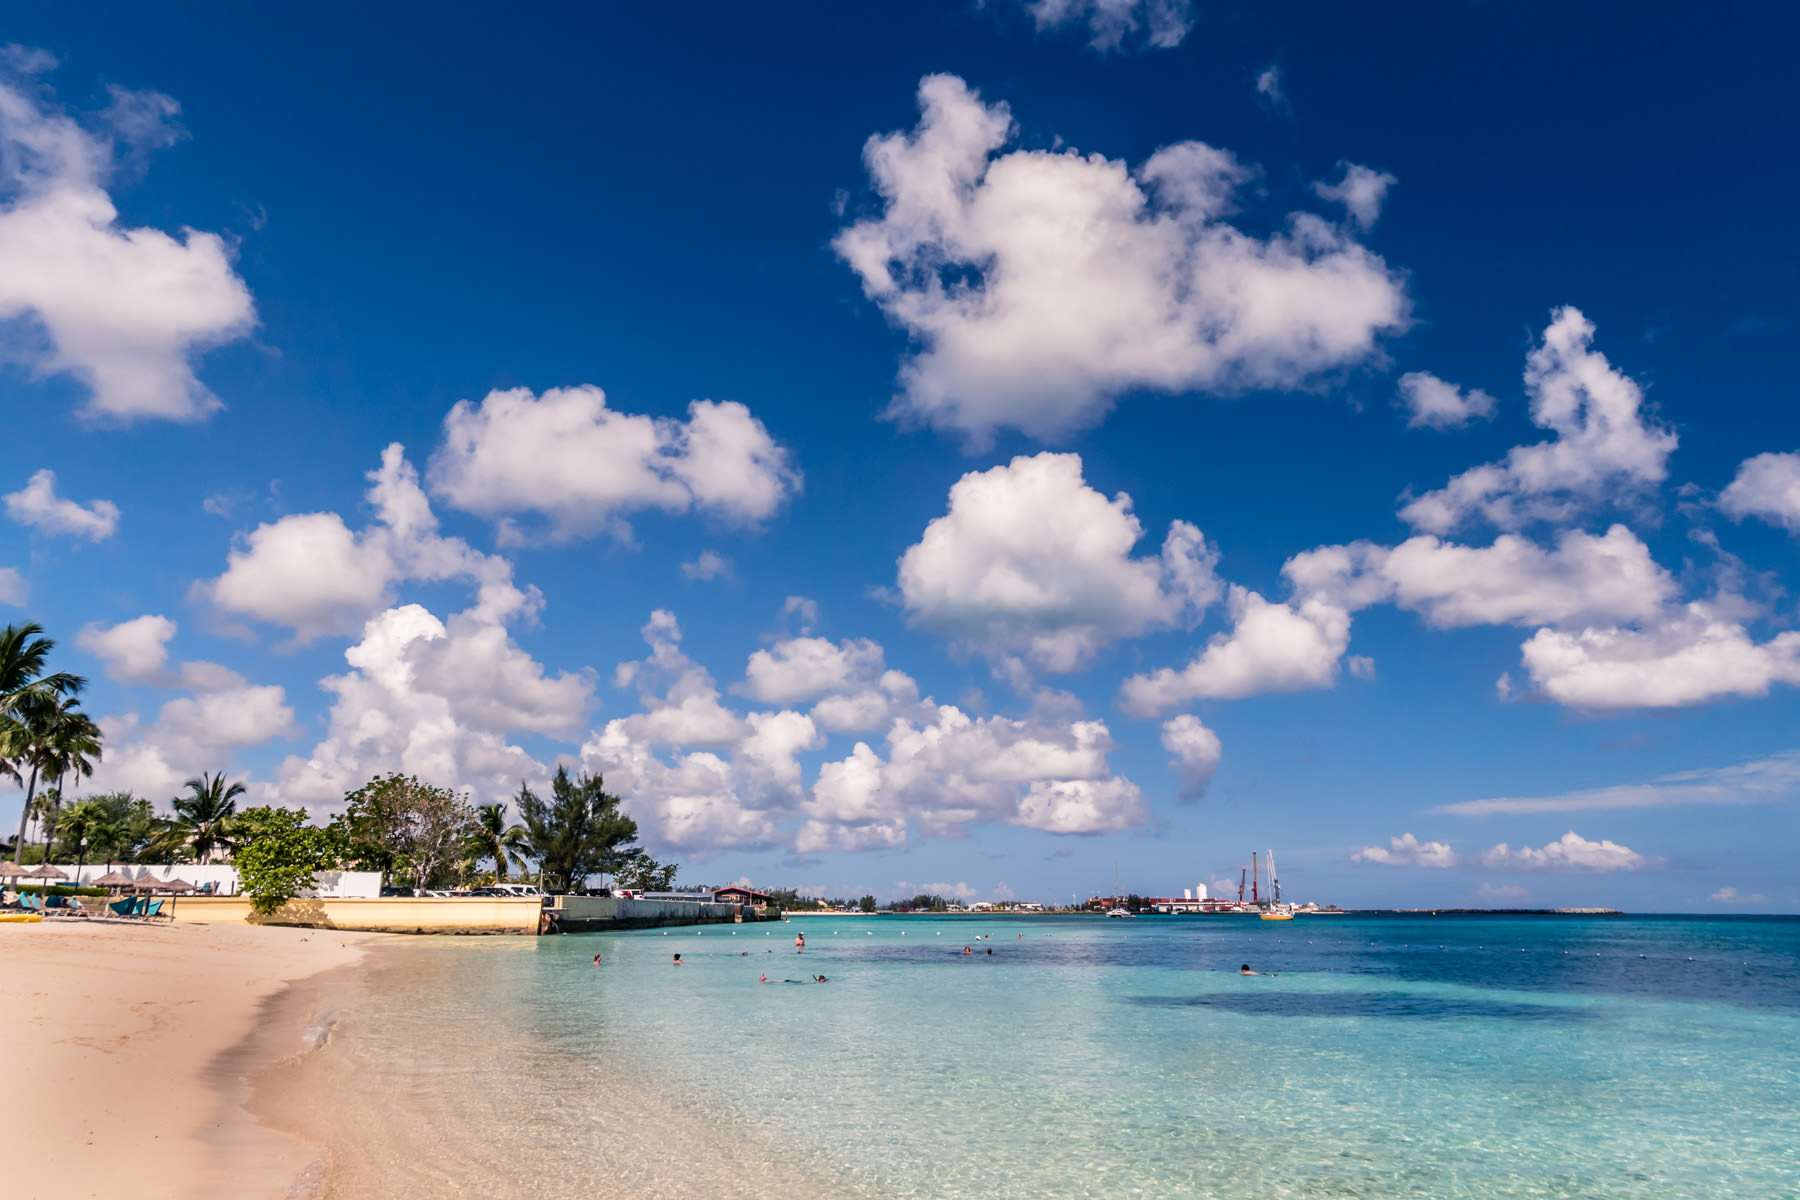 Clouds float over the harbor at Nassau, Bahamas, as seen from a beach at the British Colonial Hilton.